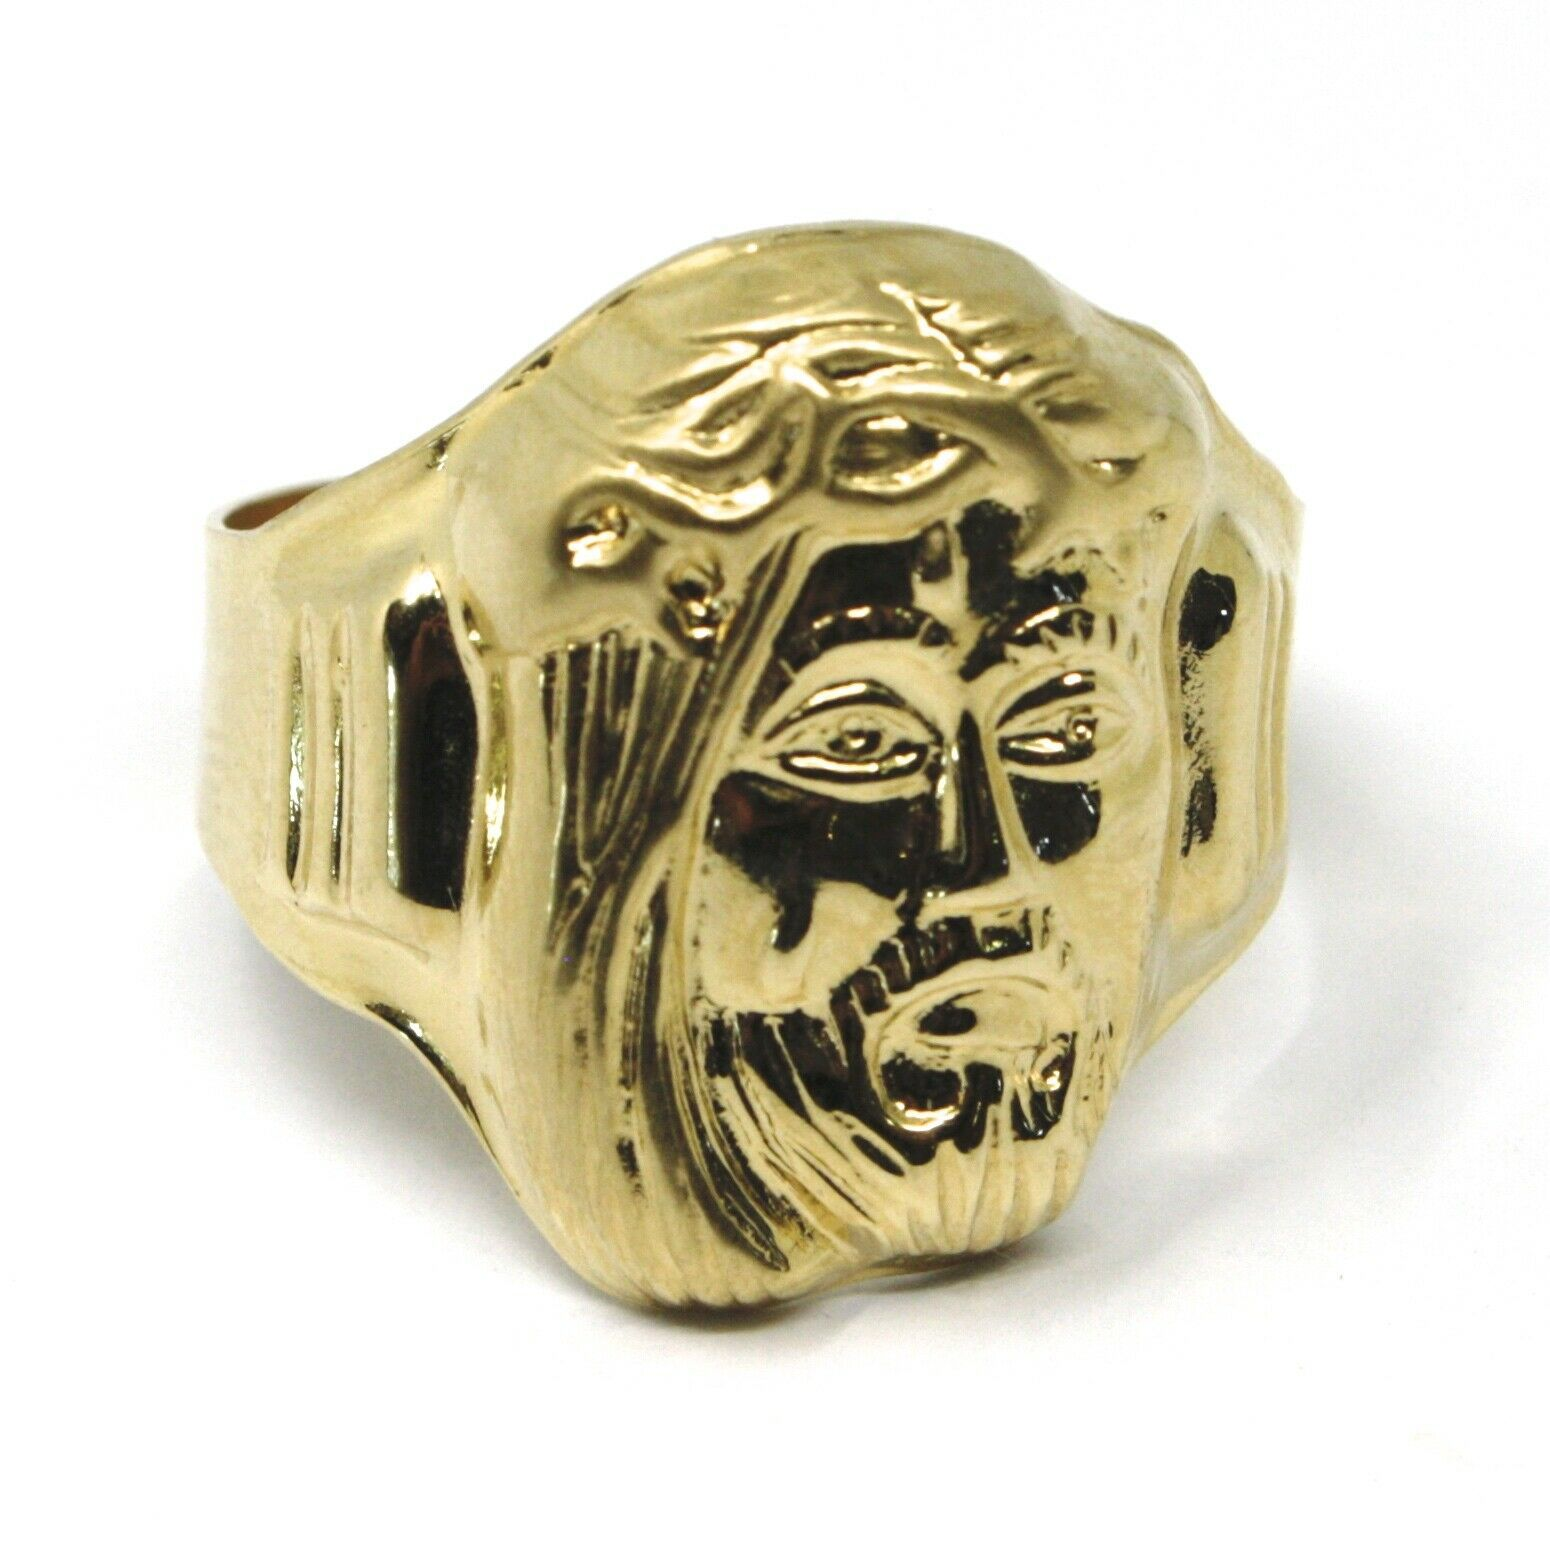 18K YELLOW GOLD BAND MAN RING, BIG JESUS FACE, MADE IN ITALY